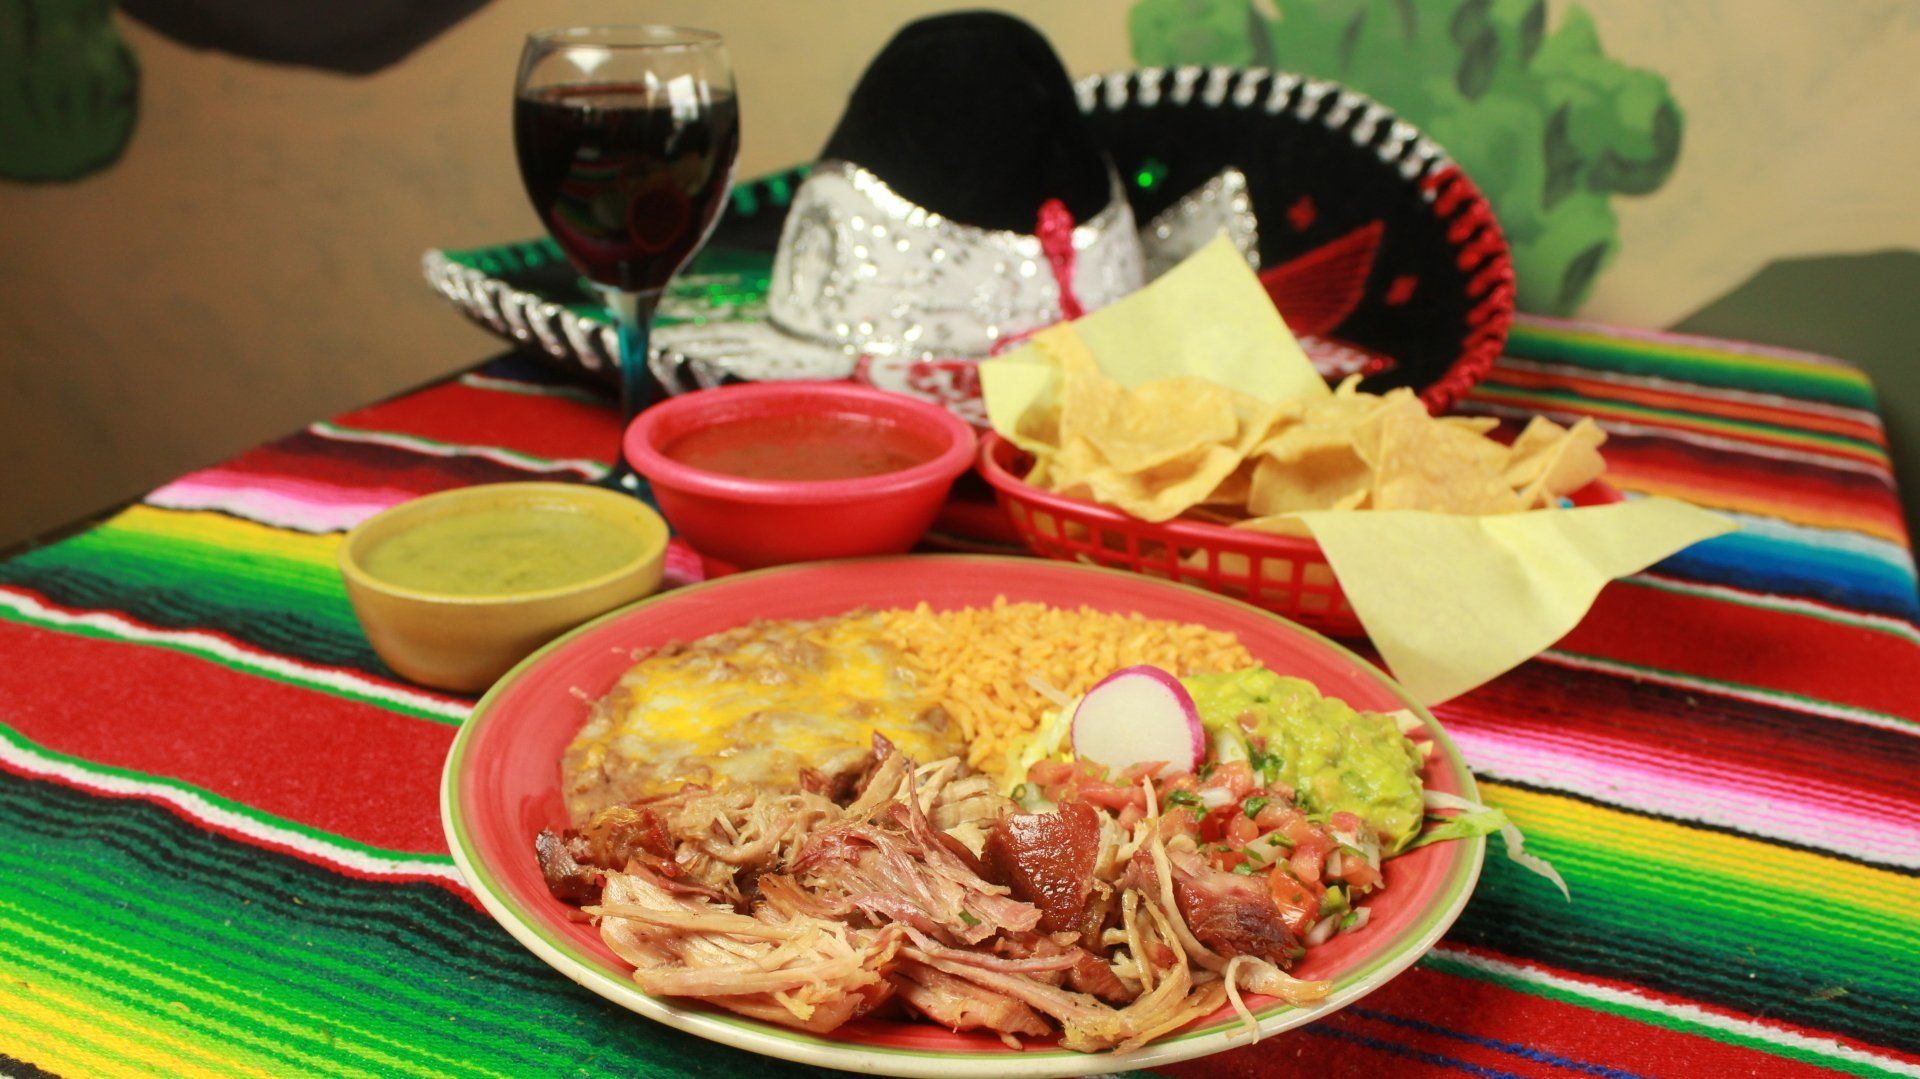 Loco Charlie's Mexican Grill Chicken Platter